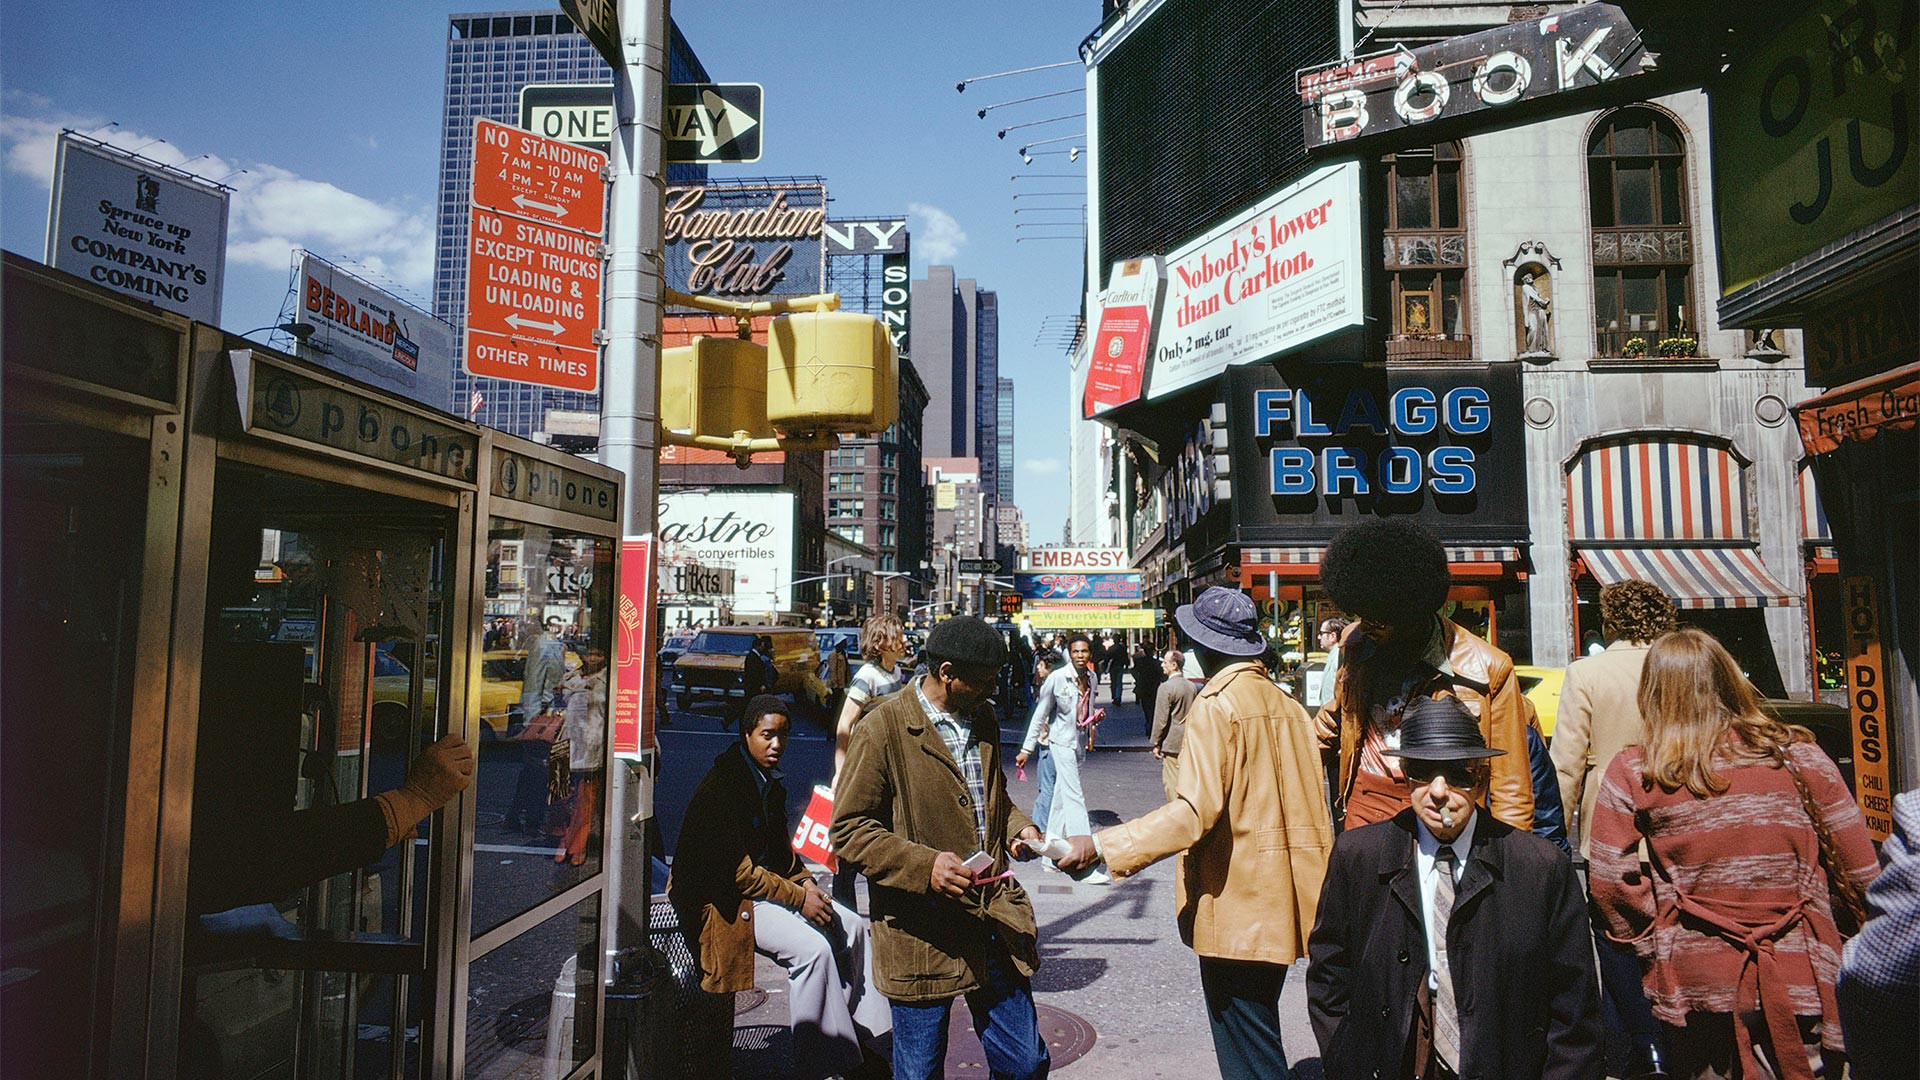 New York City street photography by Joel Meyerowitz